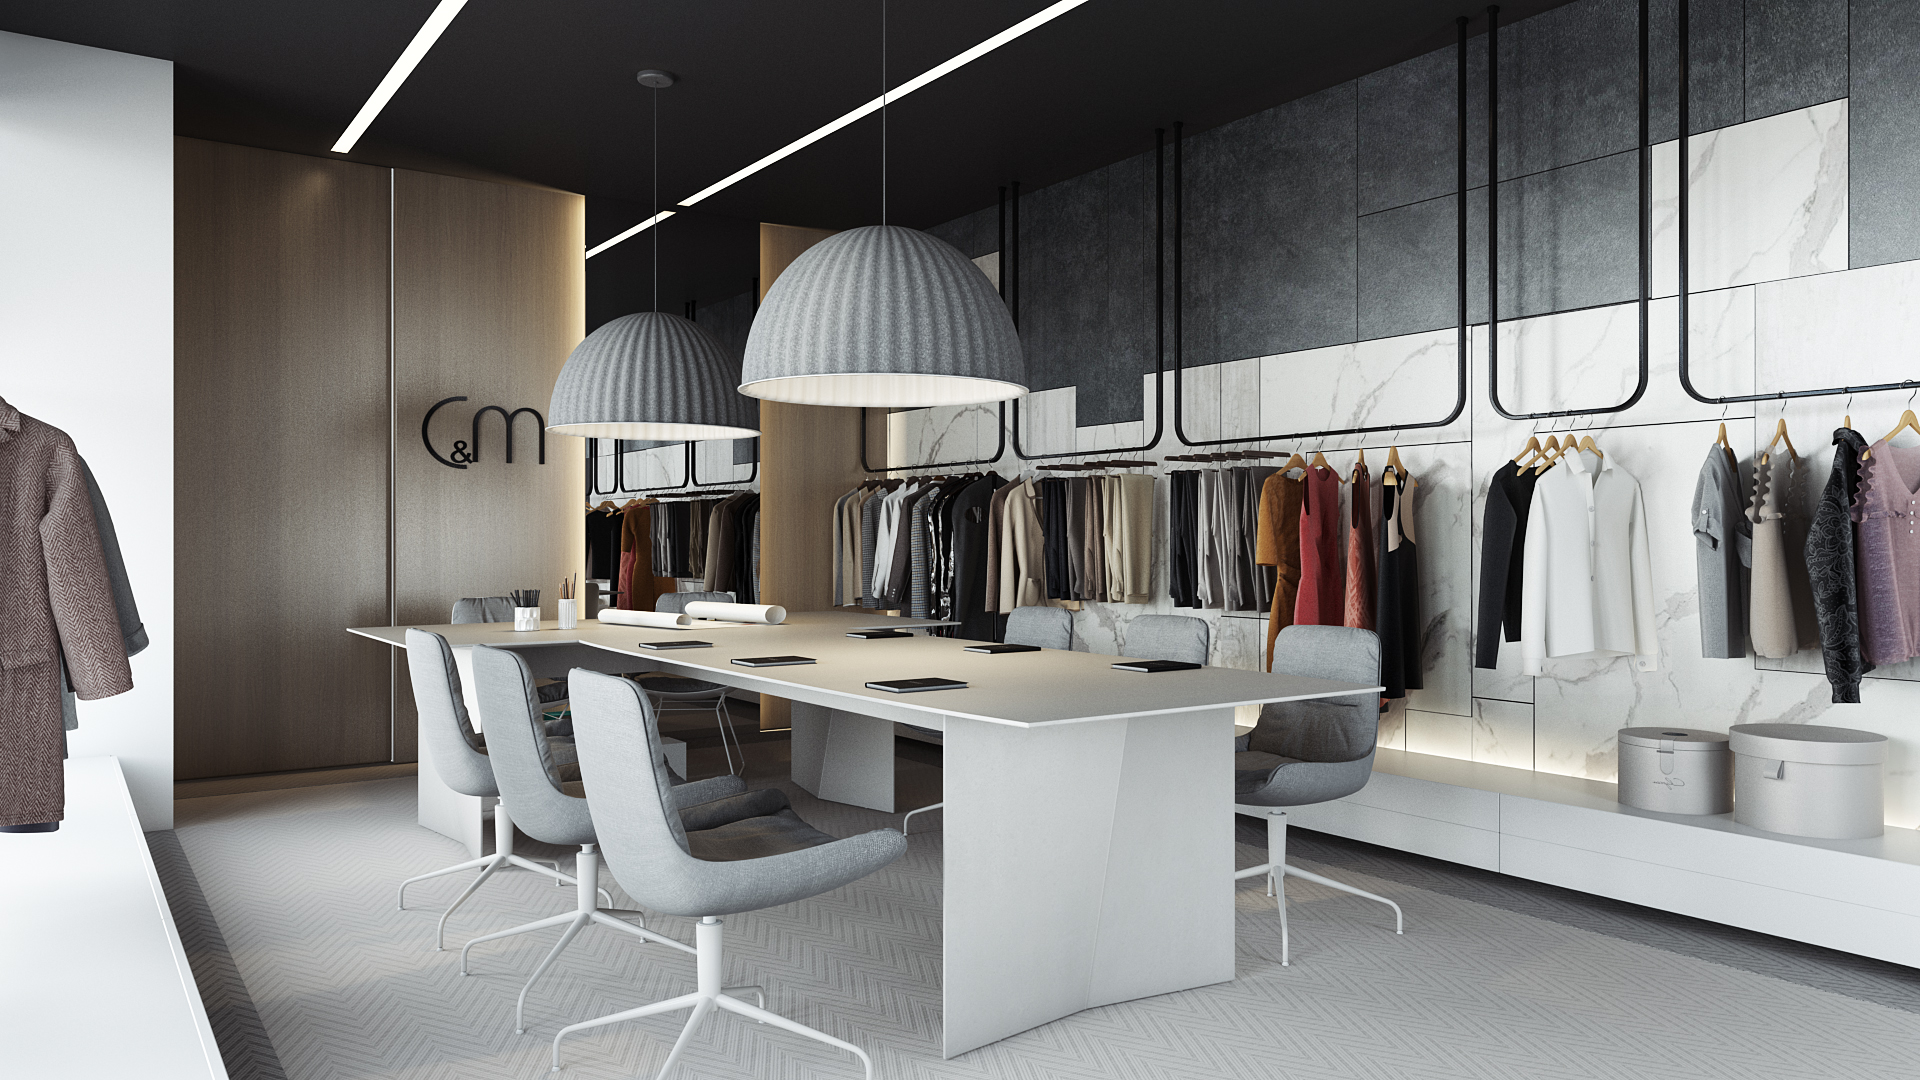 Office Furniture Lifestyle Image